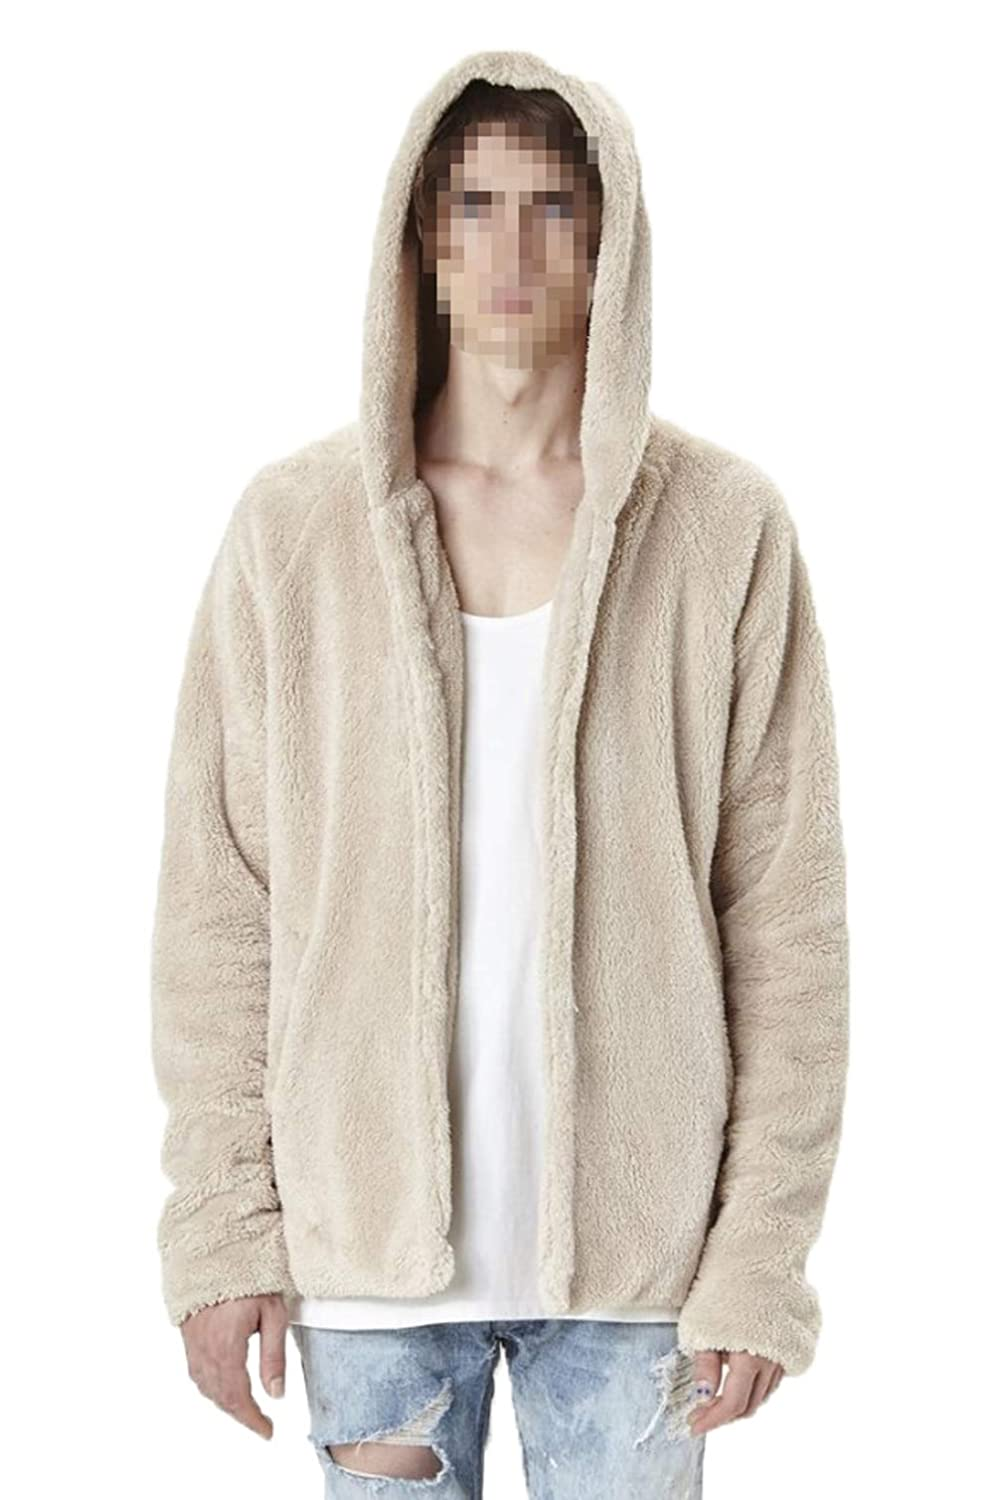 MysterLuna Men Warm Fluffy Plush Hoodie Cardigan Coat Jacket Sweatshirt Top